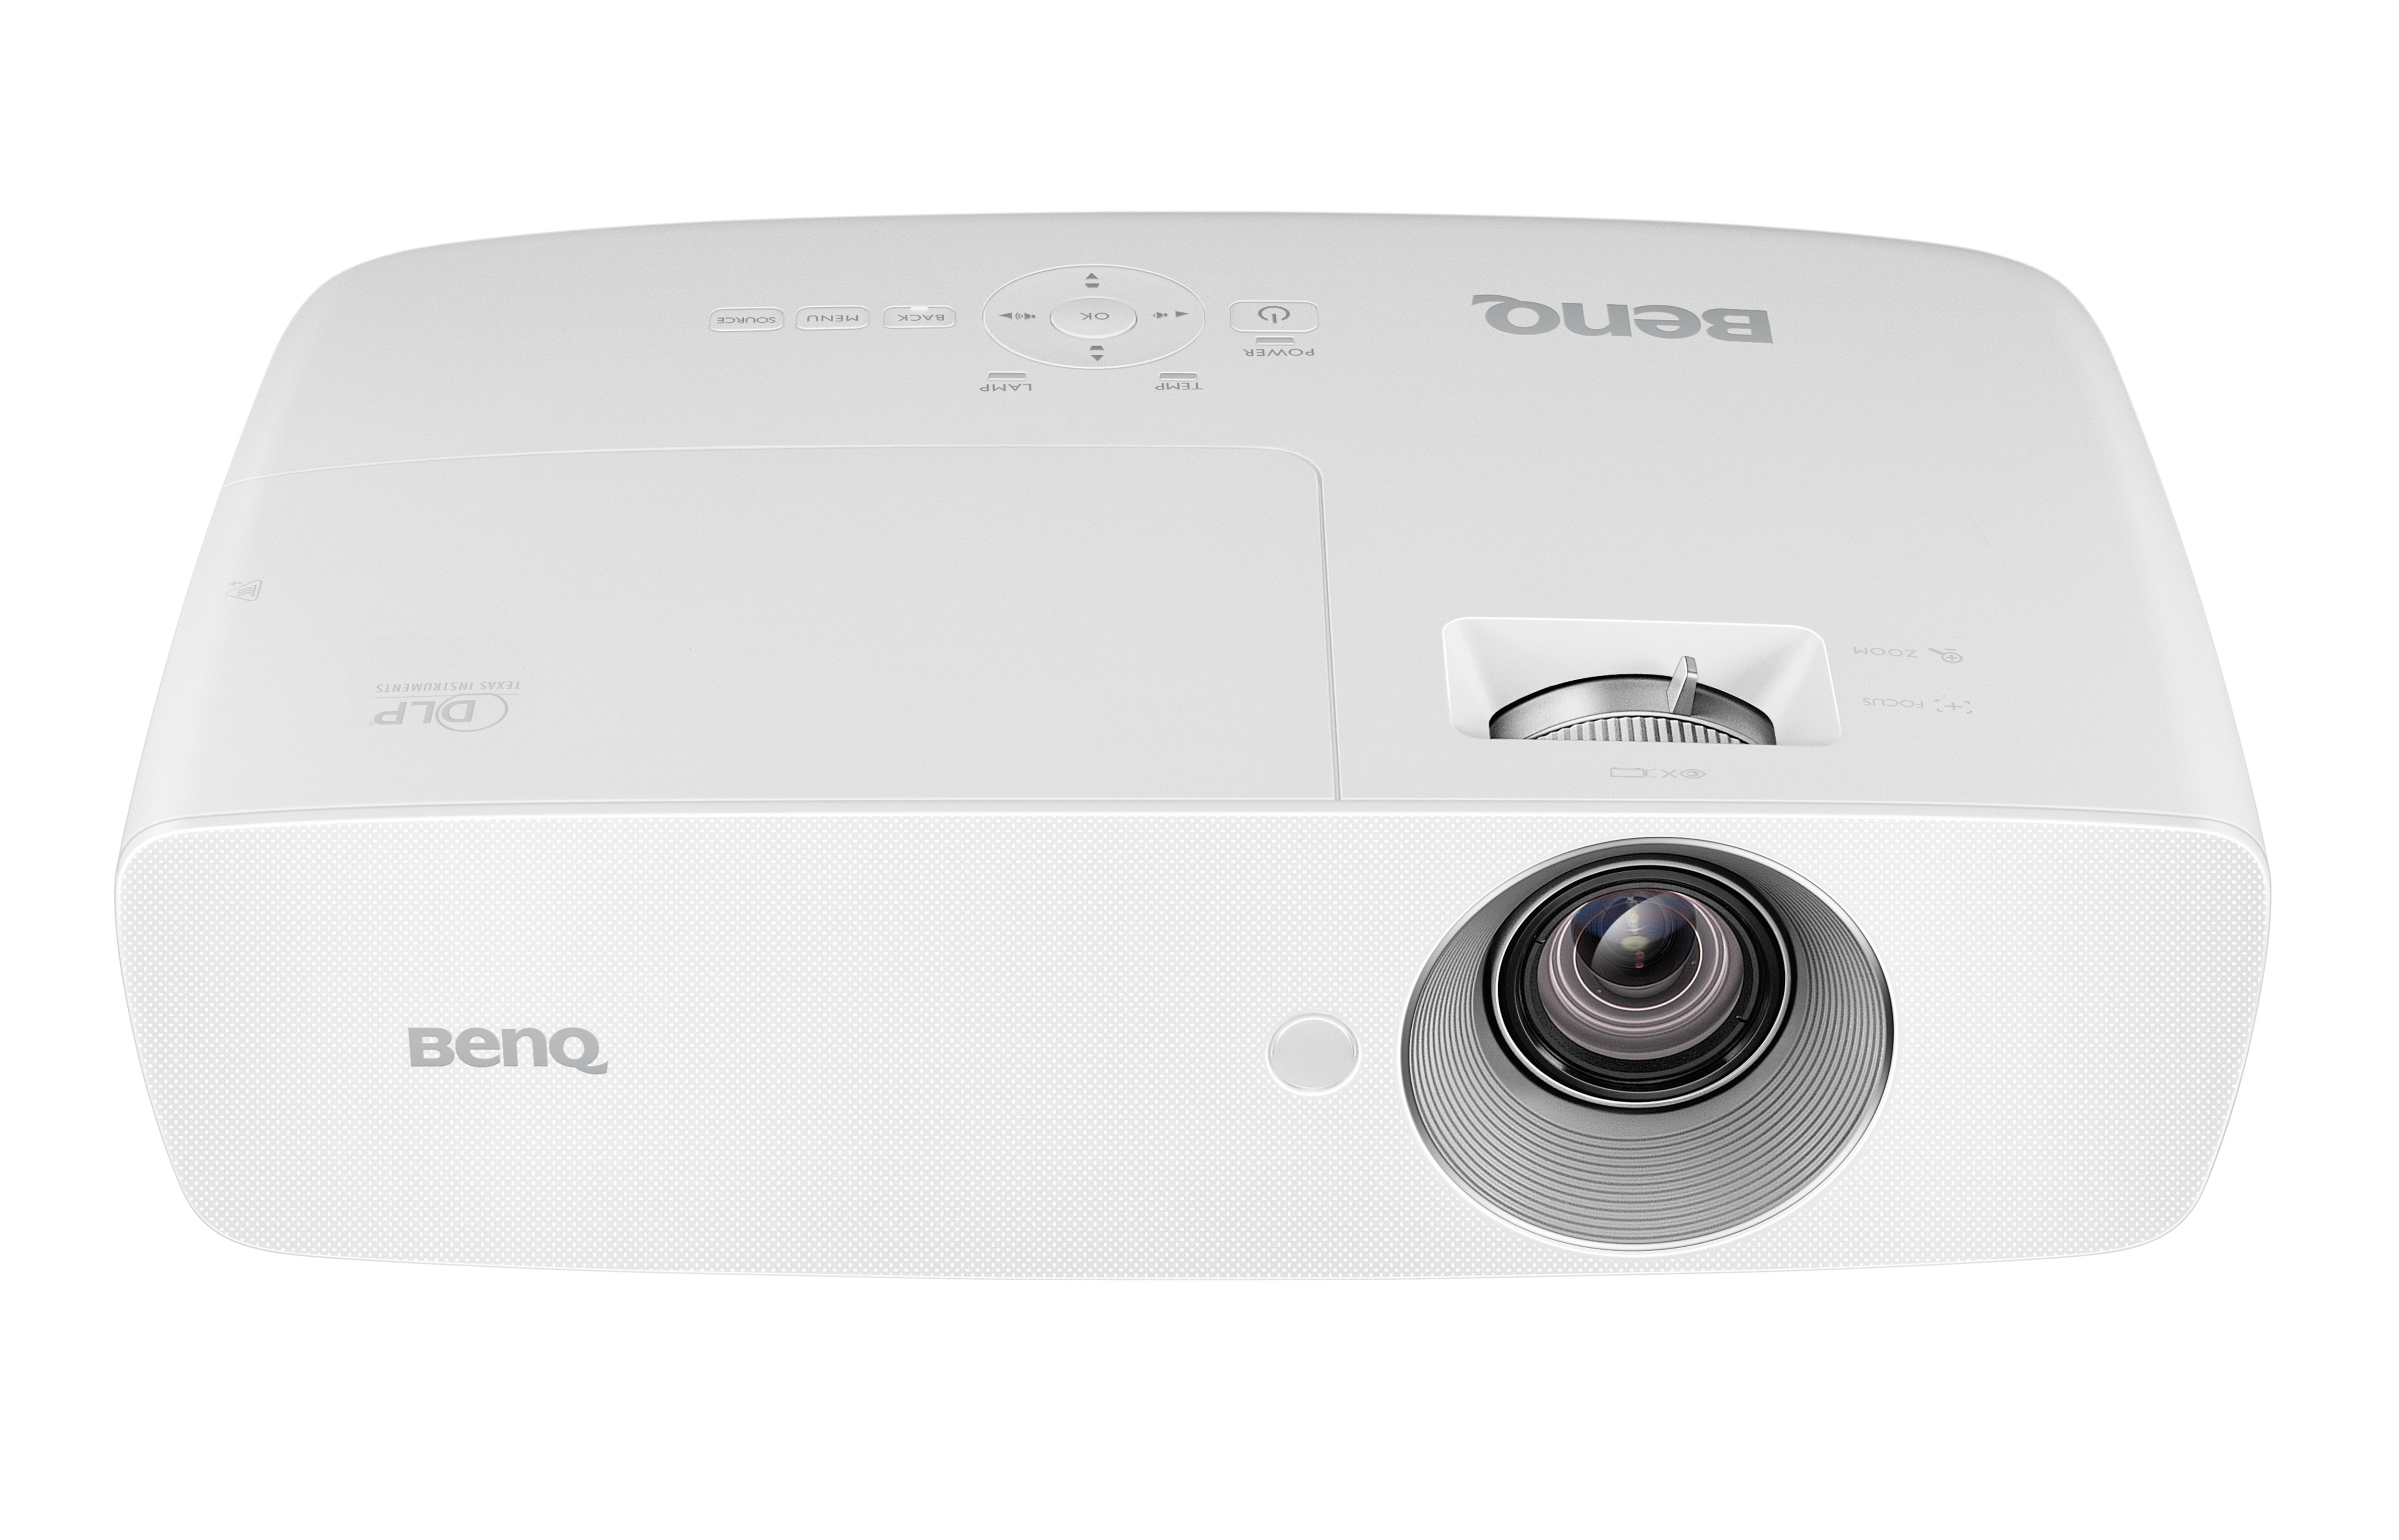 benq w1090 buy benq projectors from projectorpoint. Black Bedroom Furniture Sets. Home Design Ideas